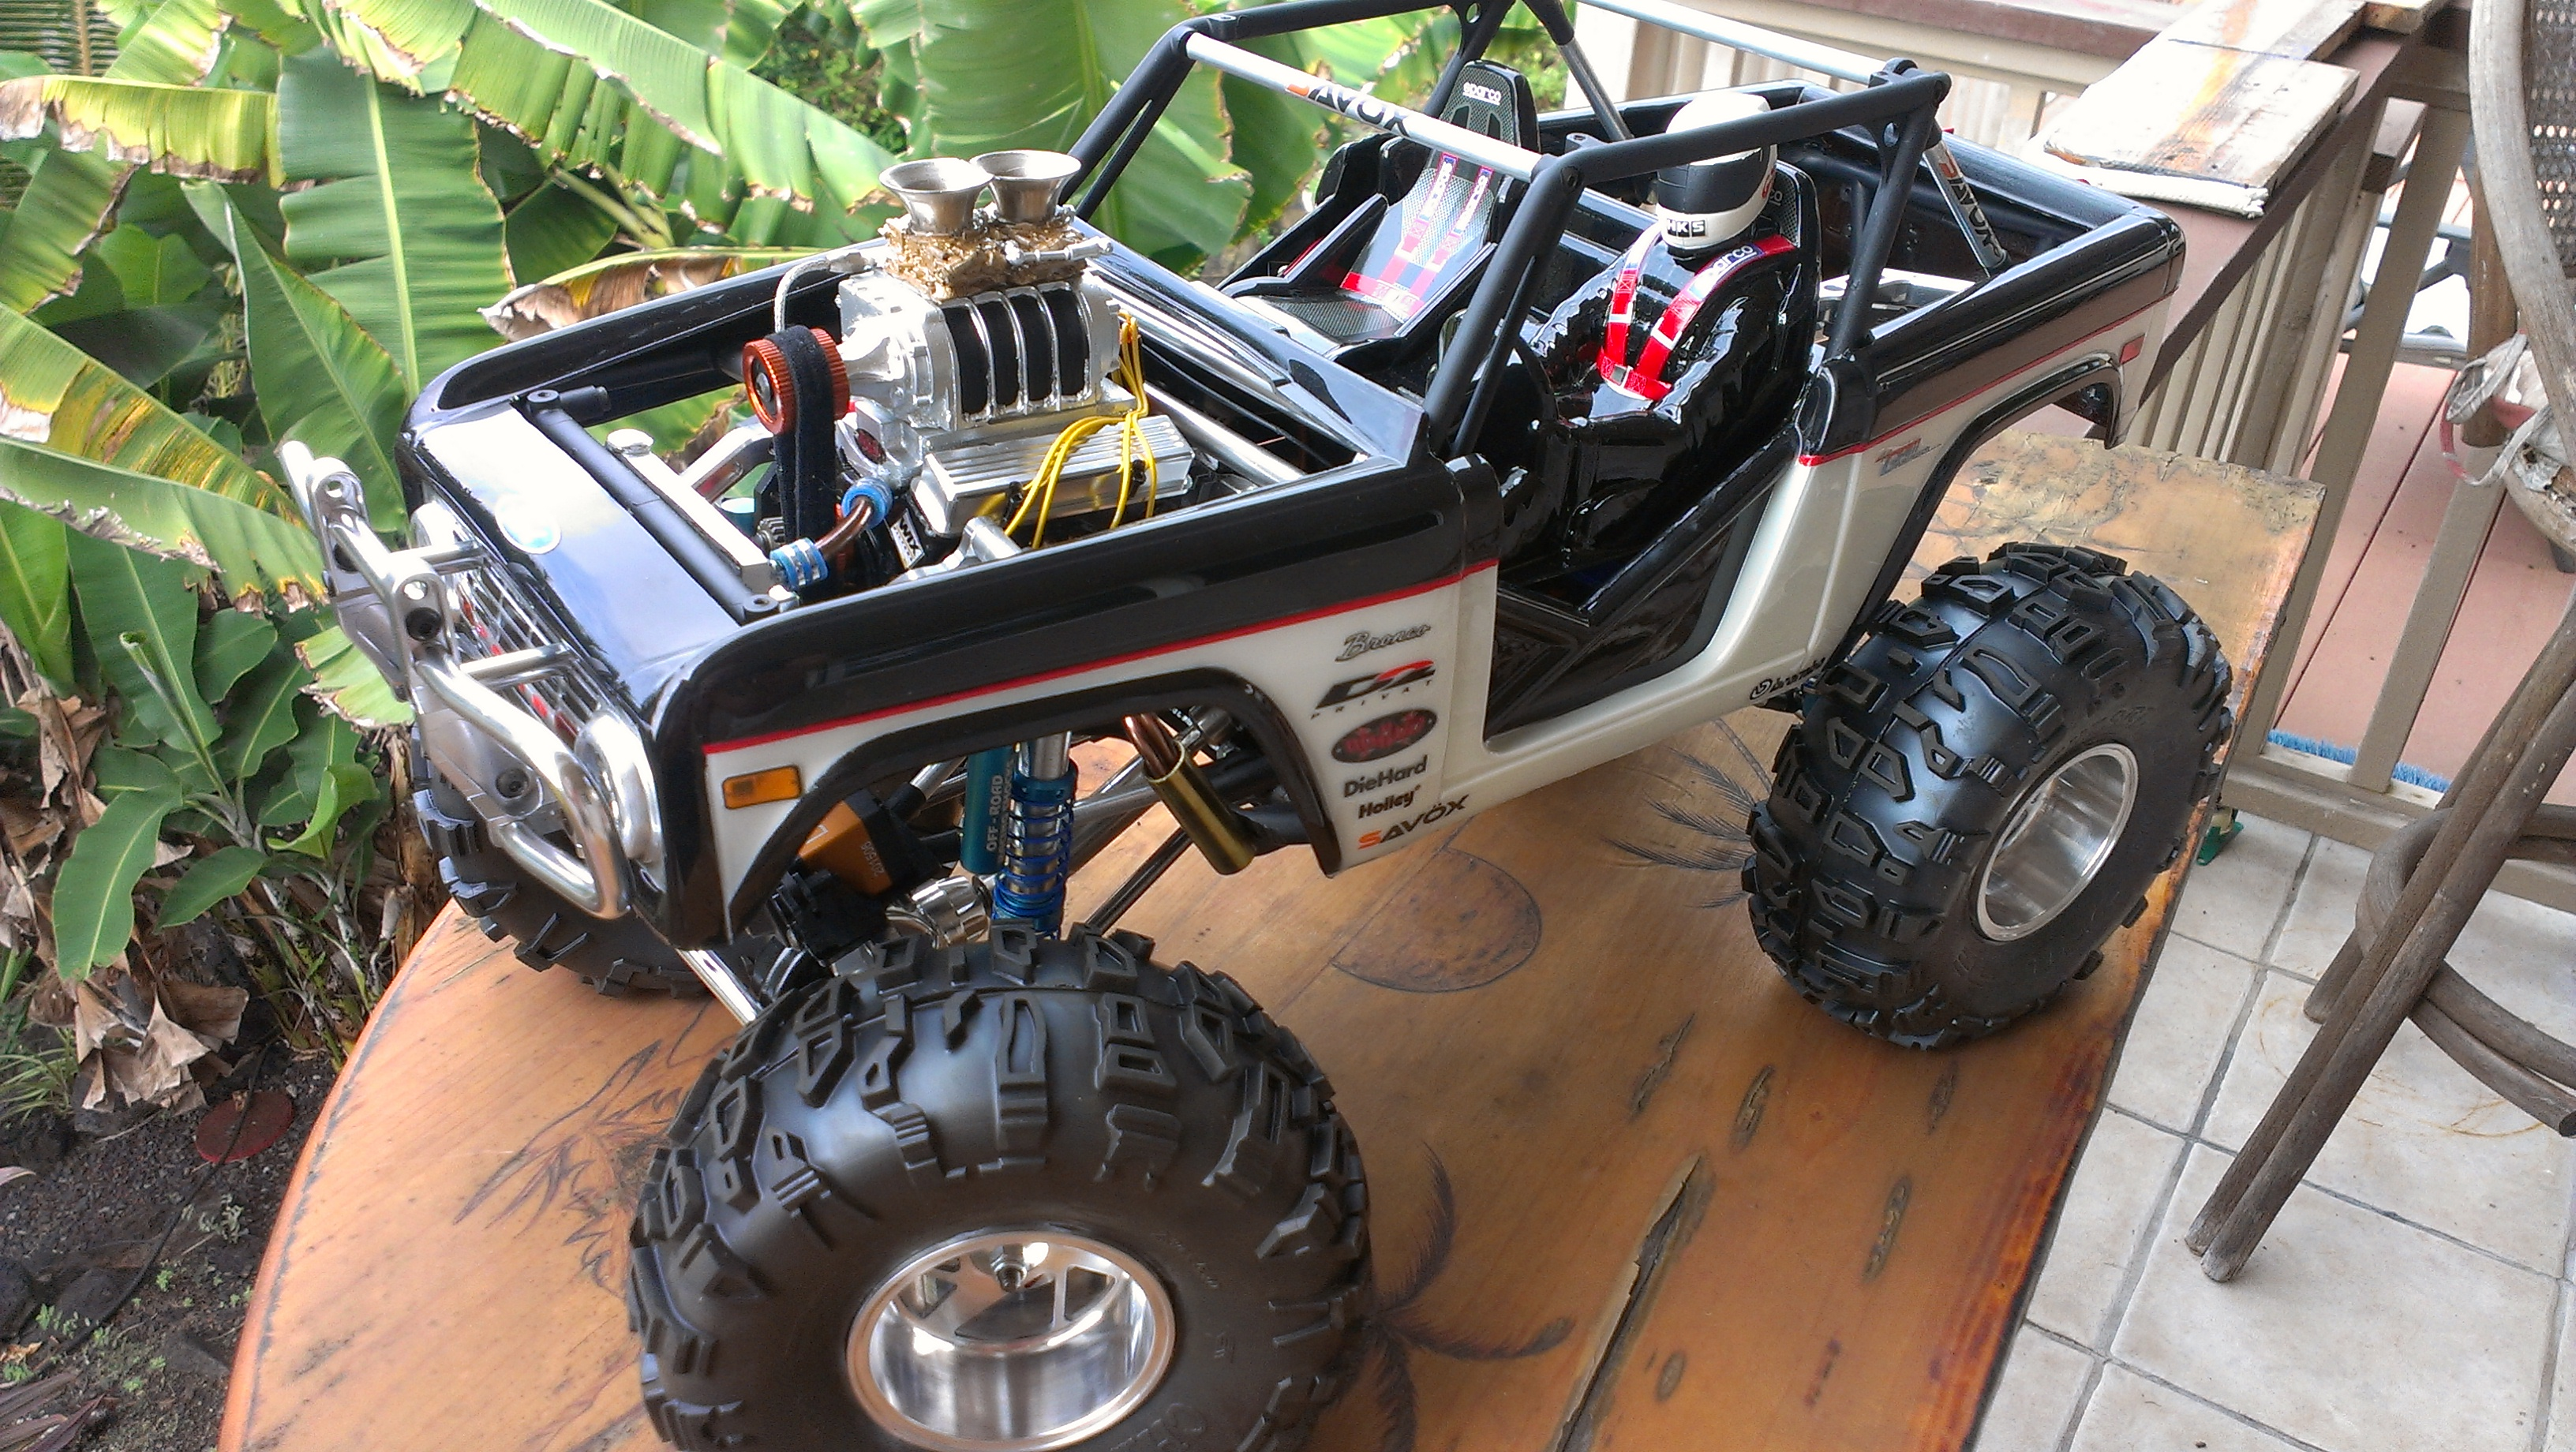 Axial Wraith Custom Bronco by Dan Boyle [READER'S RIDE]